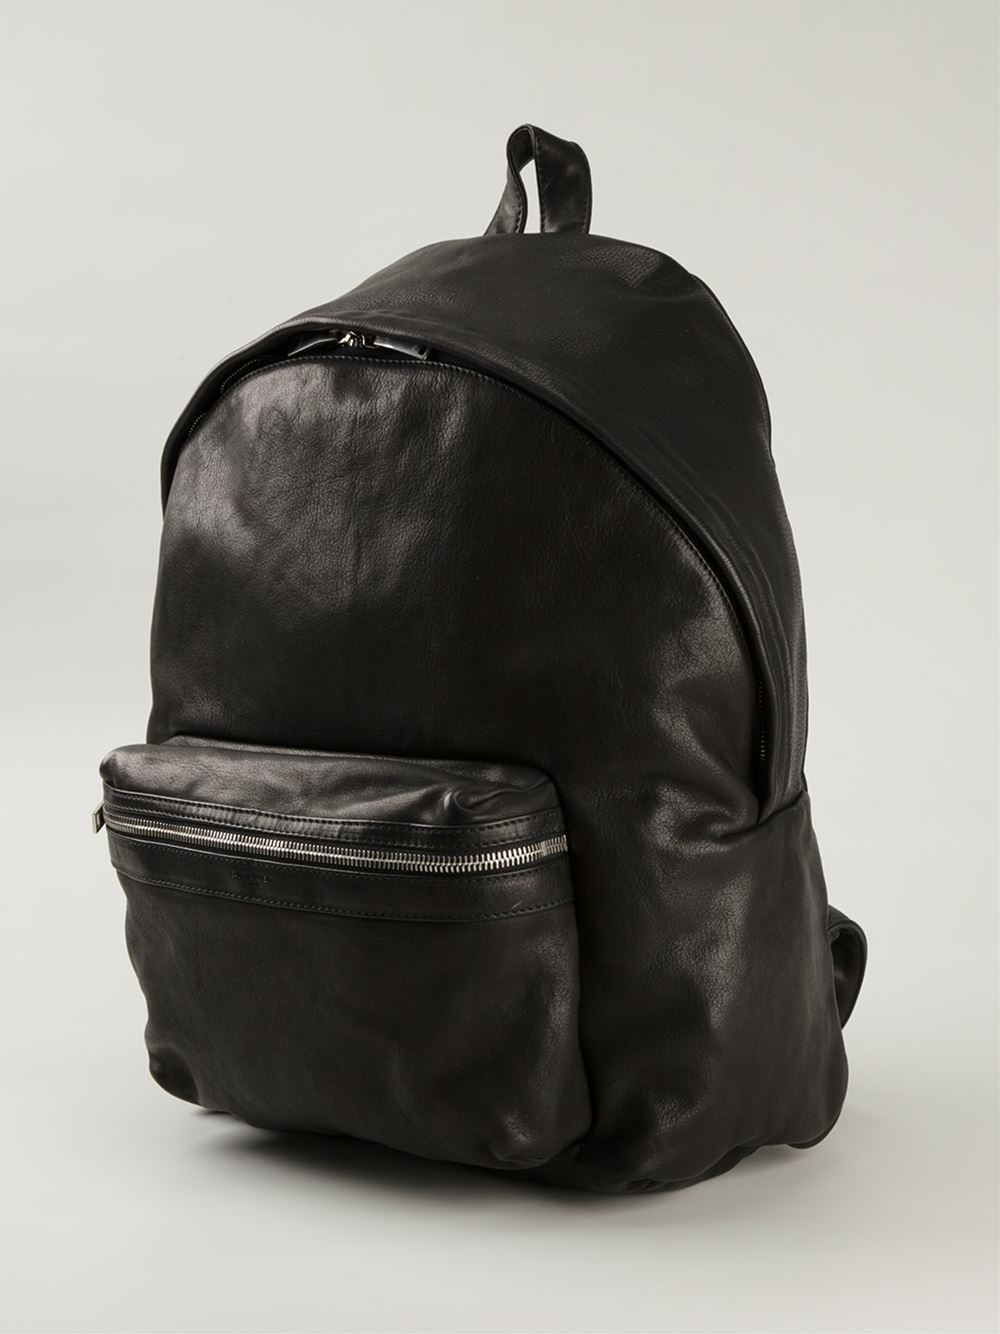 c8e69e96244 ... Lyst black ysl bag - Saint laurent Hunter Calf-Leather Backpack in Black  for Men ...